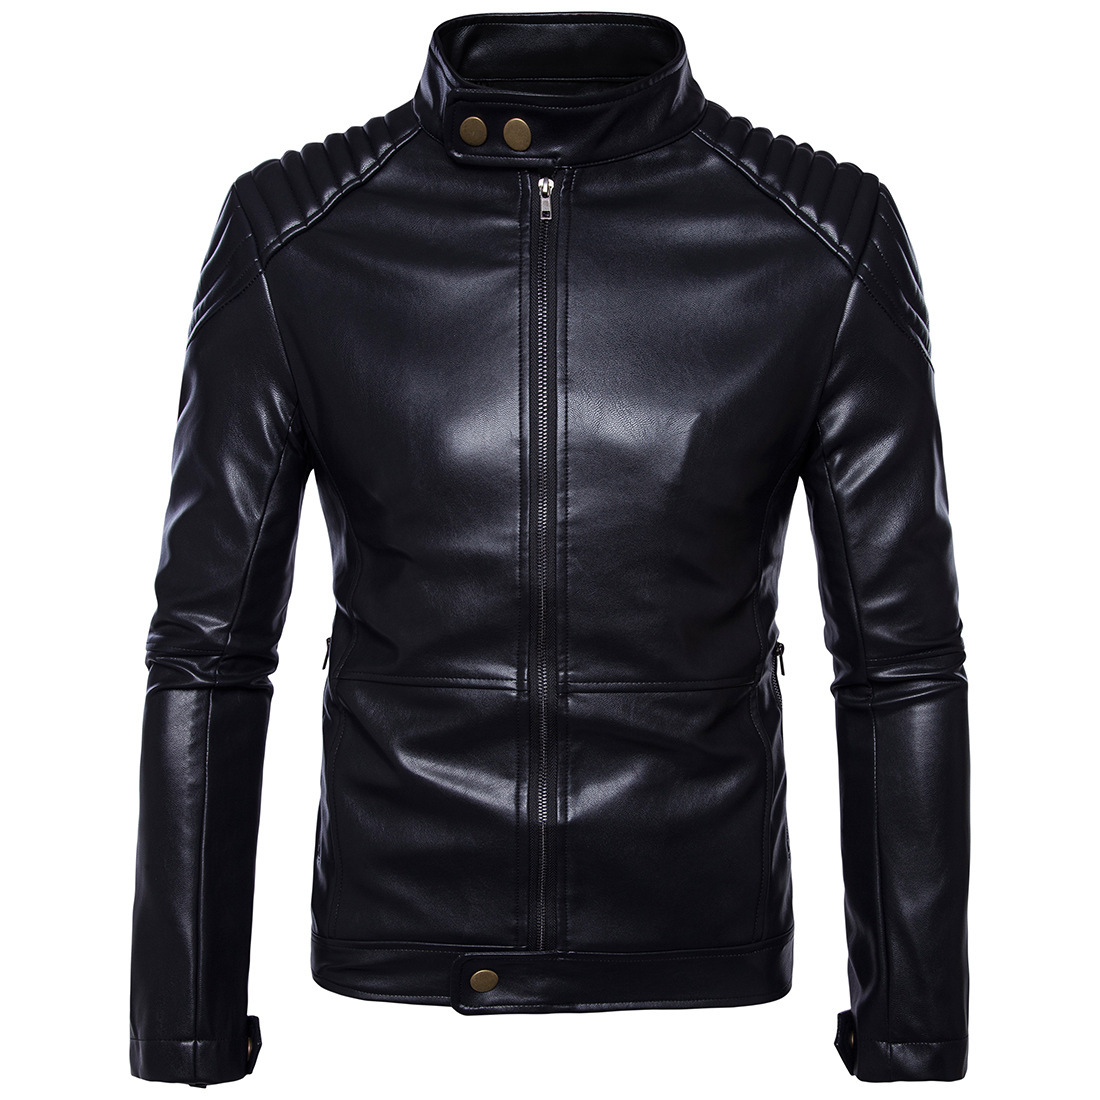 [Code] European Export Germany Locomotive Leather Coat High-End Carrie Motorcycle Leather Jacket Men'S Wear International Large